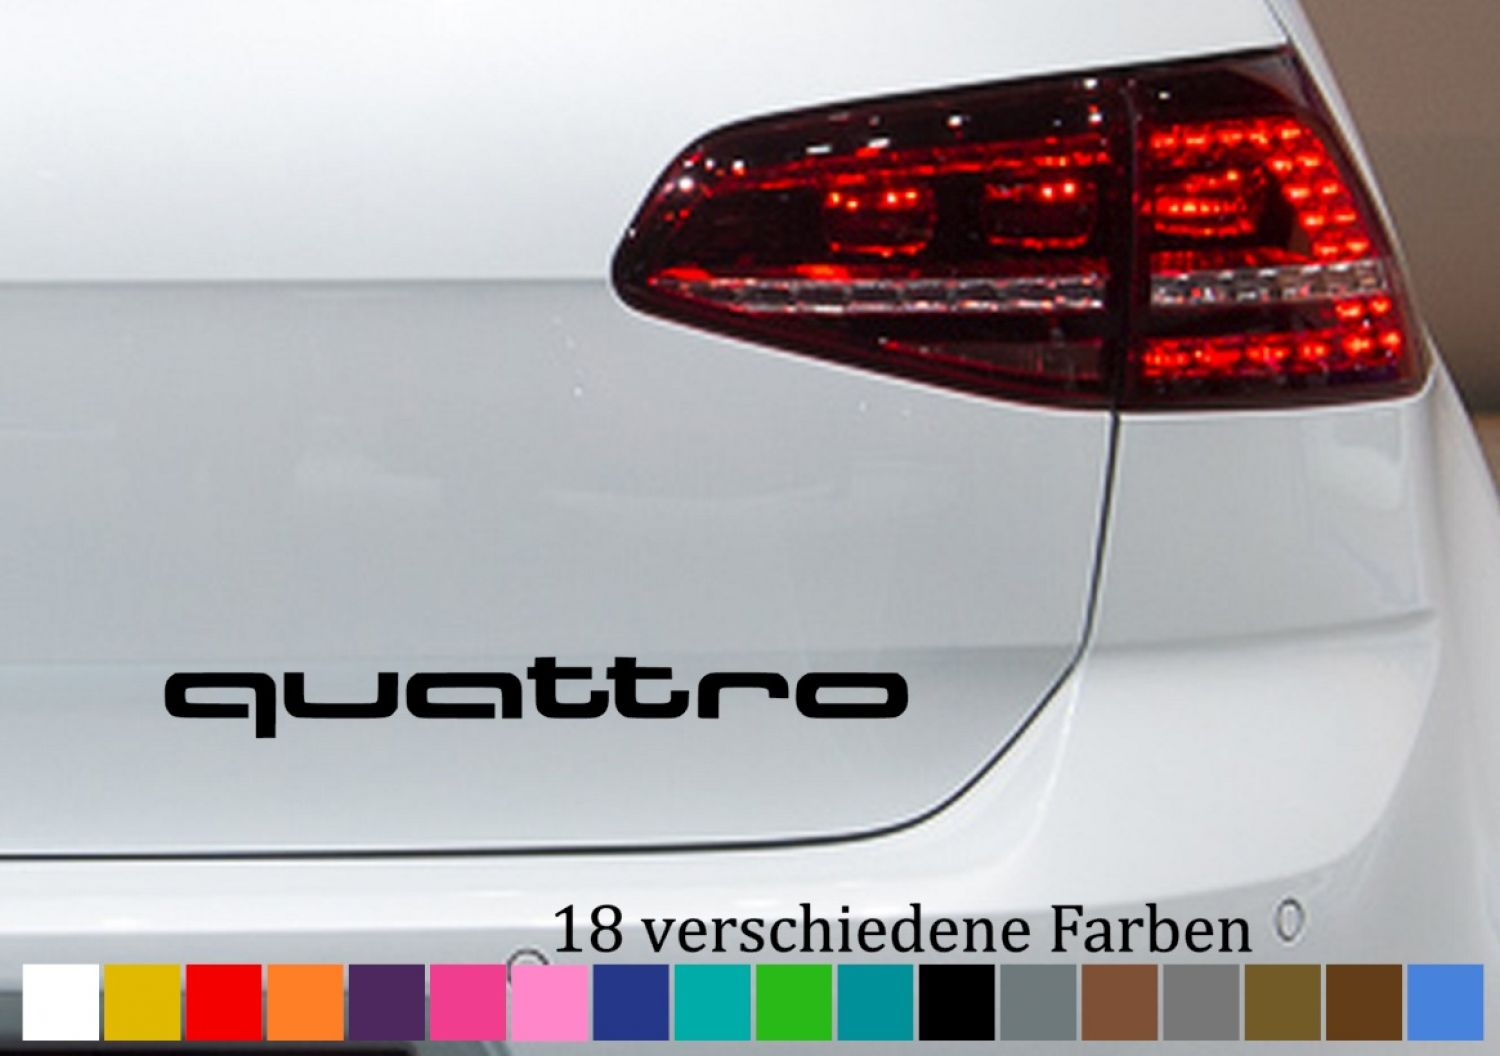 quattro schriftzug audi aufkleber autoaufkleber sticker. Black Bedroom Furniture Sets. Home Design Ideas